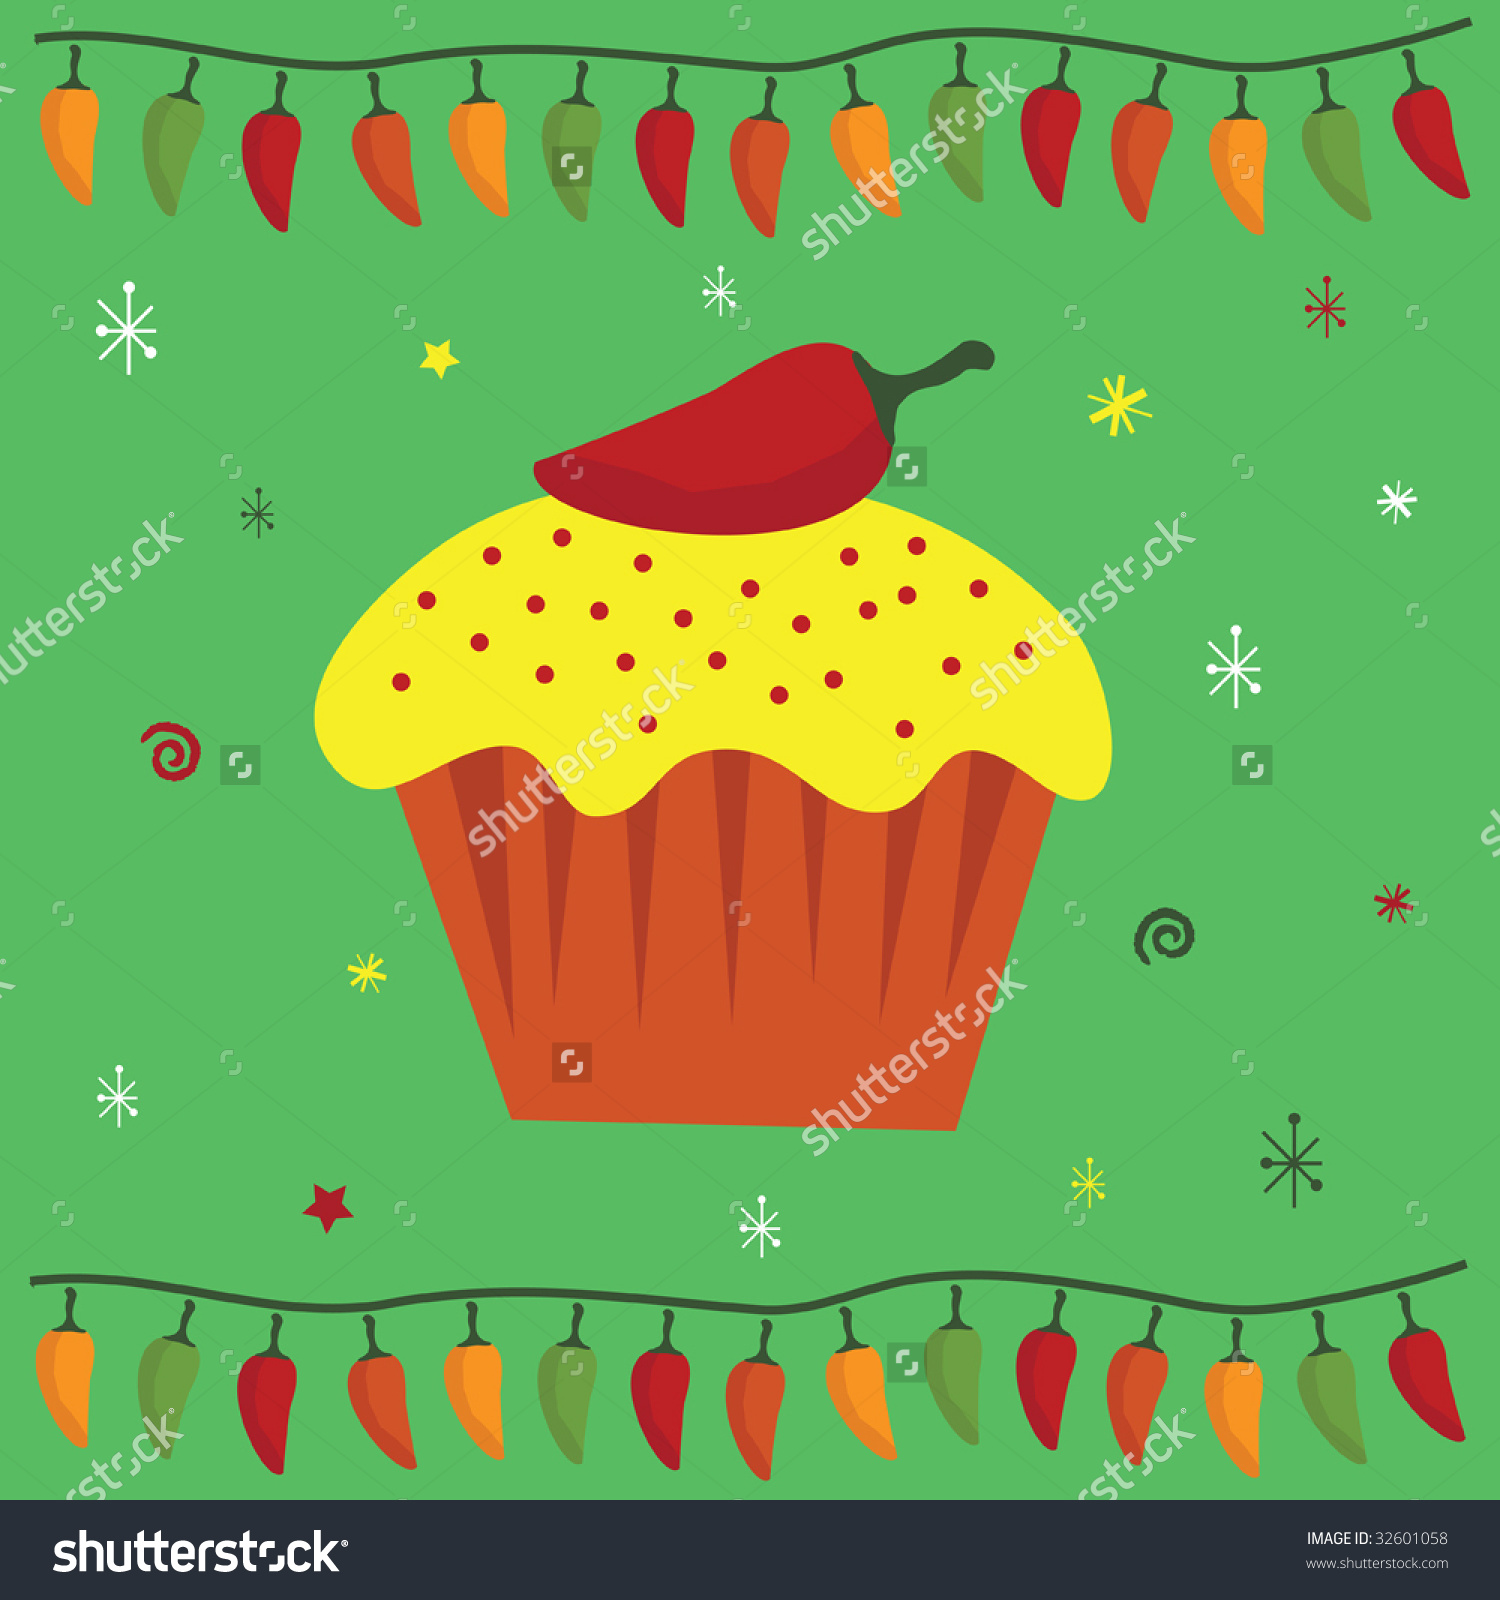 Greeting Card Design In A Mexican Style With Chili Pepper Cake.